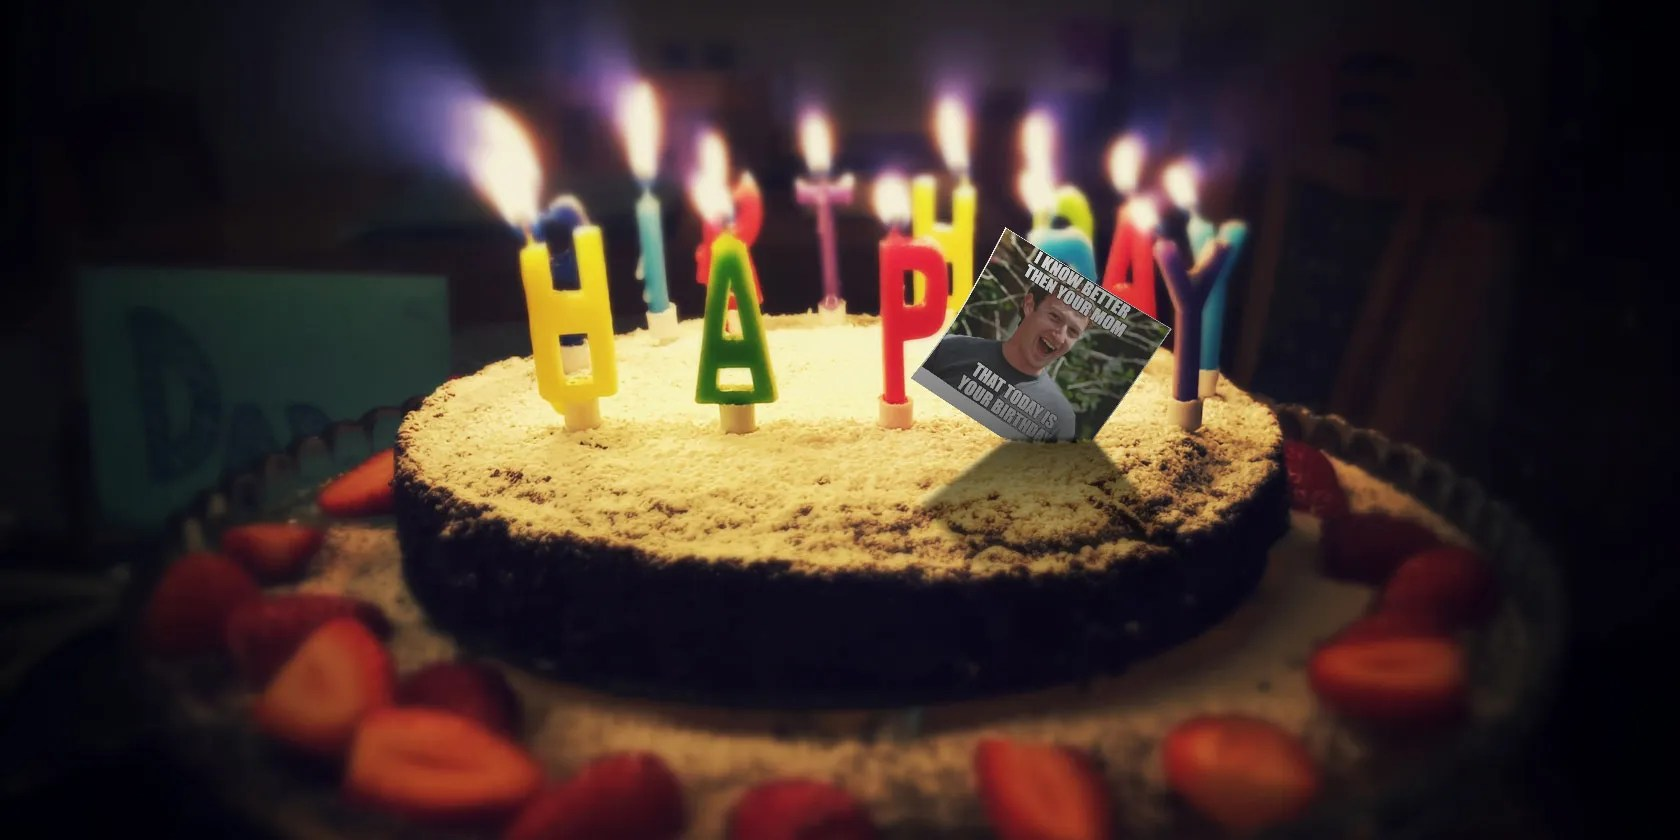 funny-felice-compleanno-memes